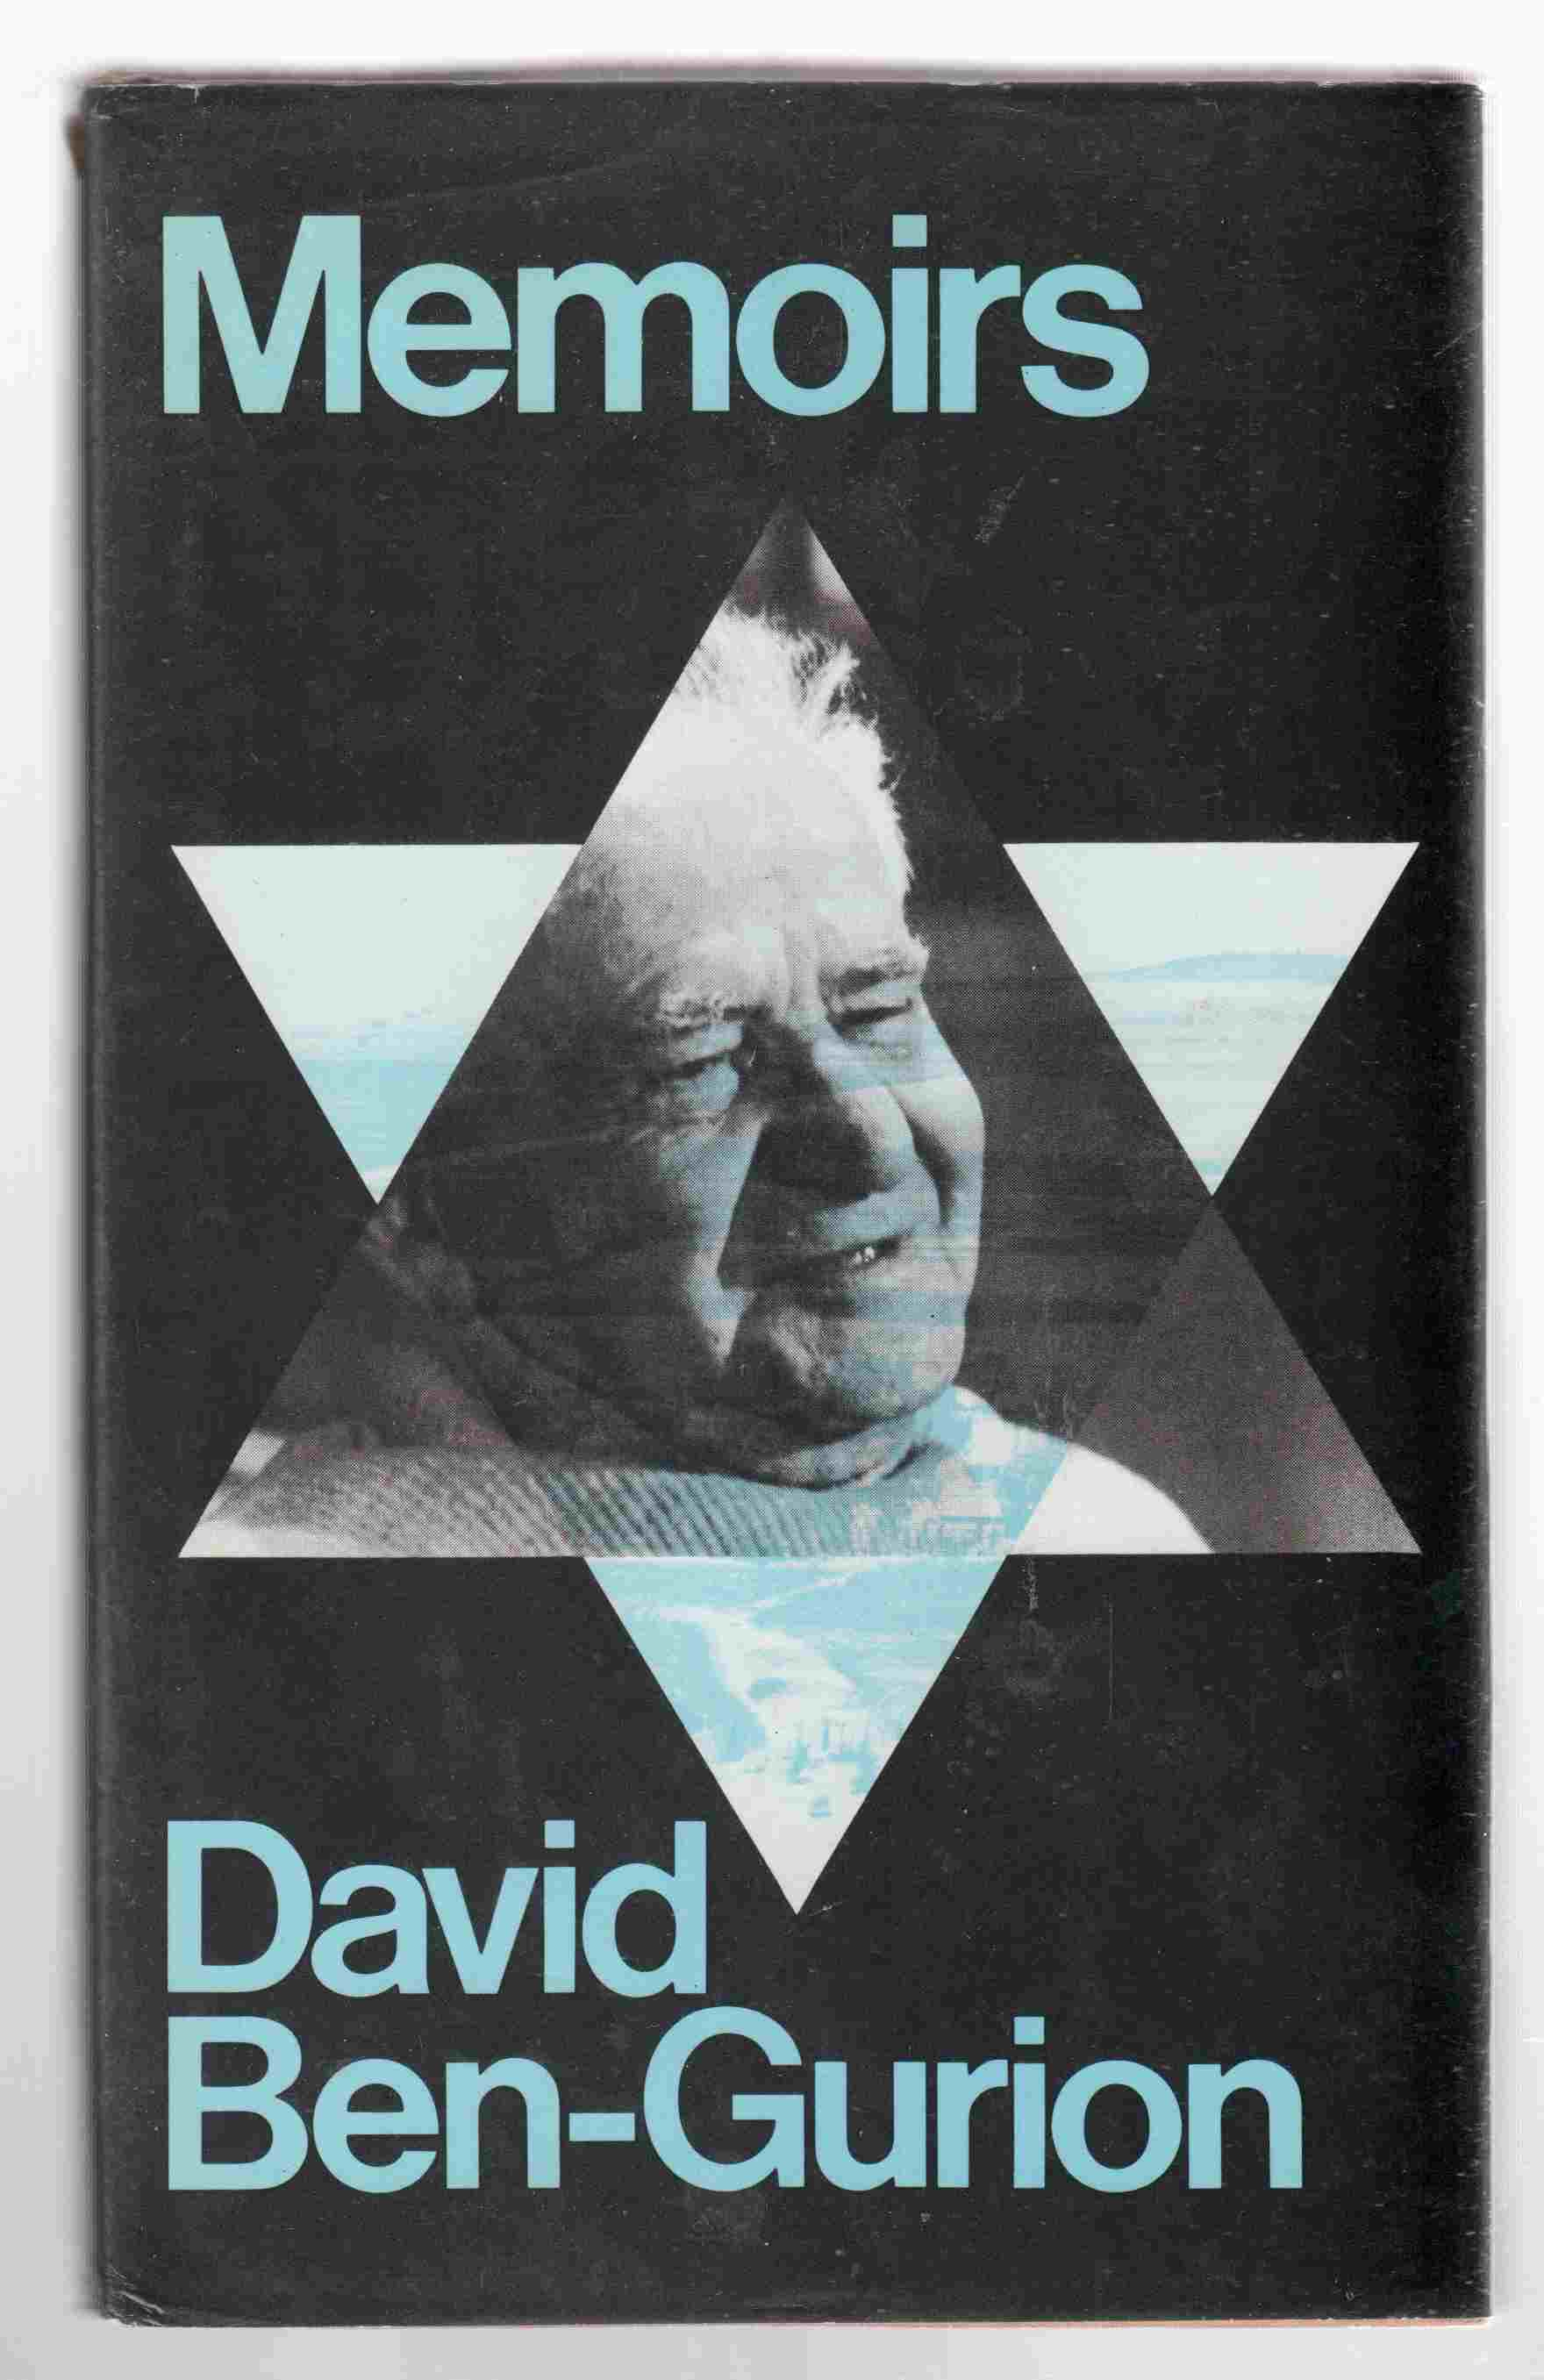 Image for Memoirs David Ben-Gurion